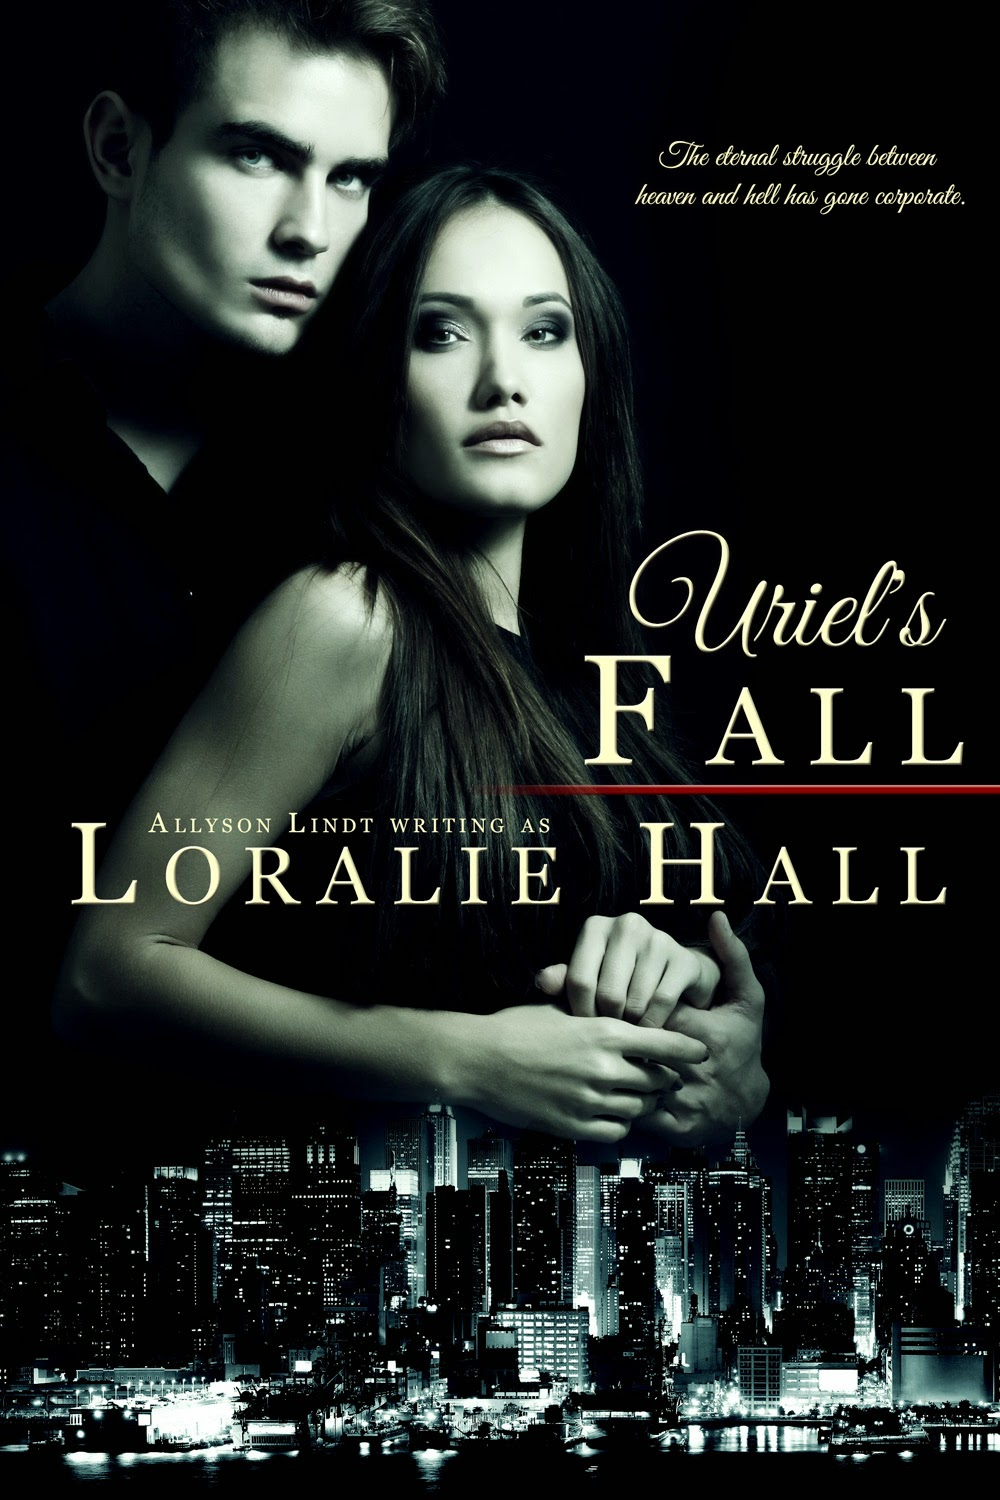 Urban fantasy book excerpt from Uriel's Fall by Loralie Hall